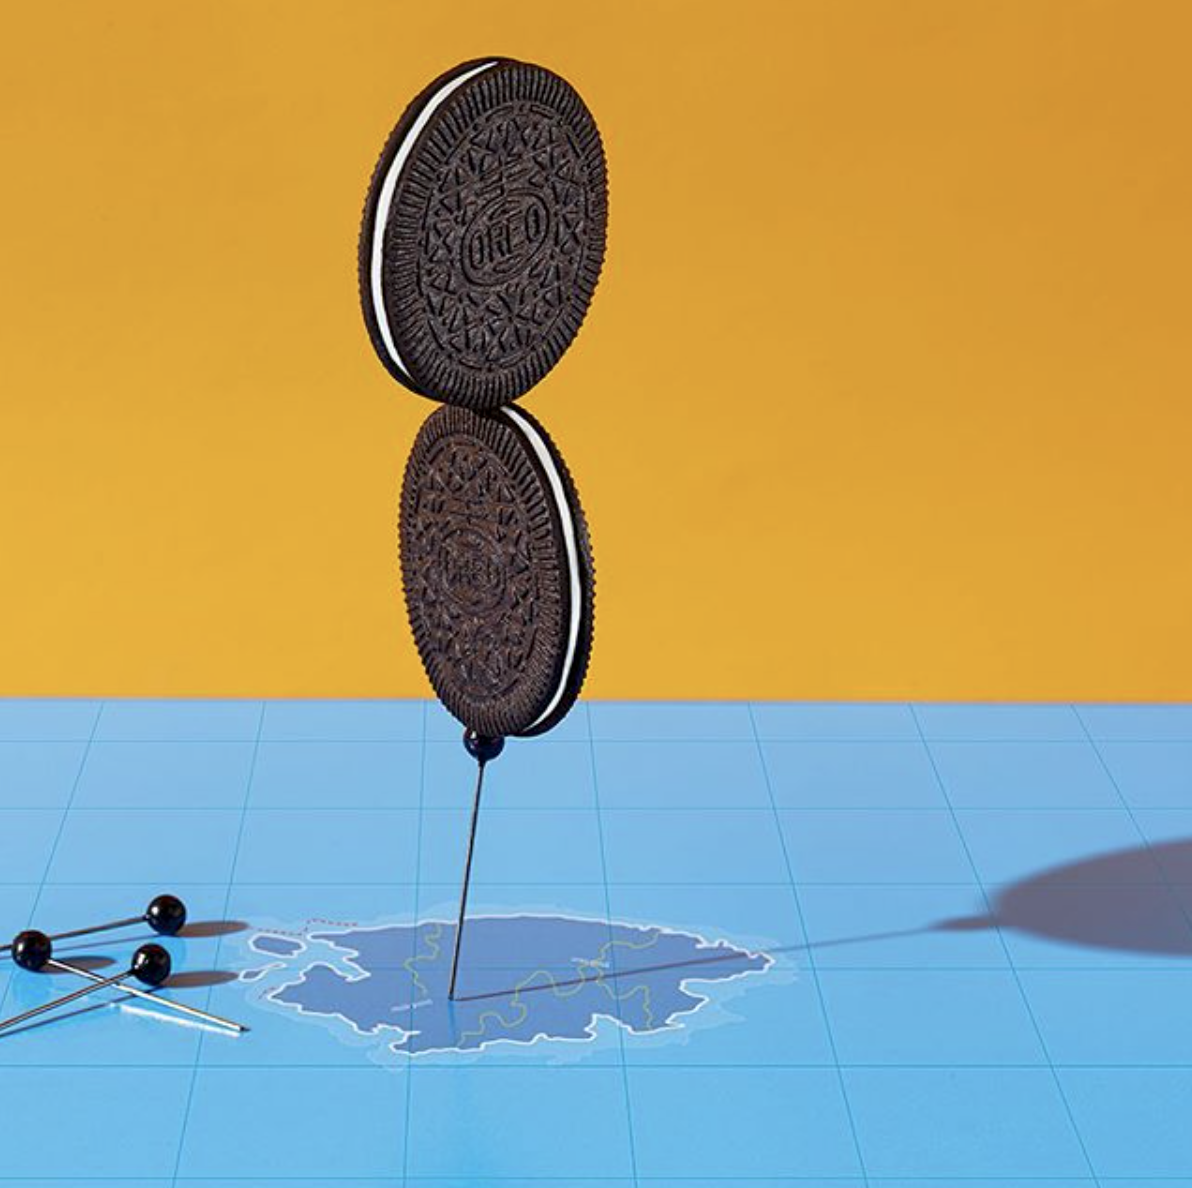 Oreo's fan following is dedicated thanks to its classic design and flavors.